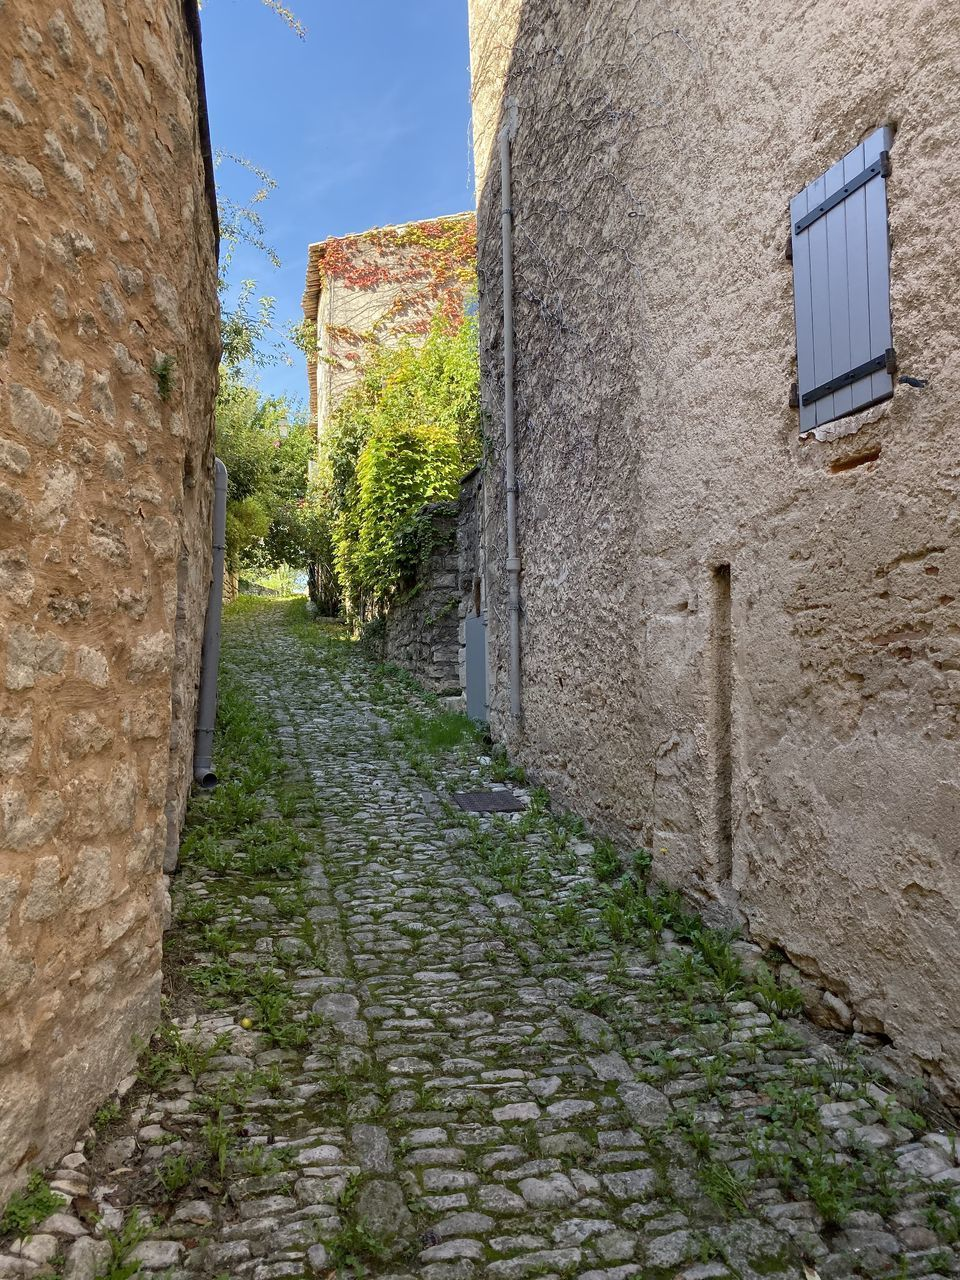 architecture, built structure, building exterior, wall - building feature, wall, building, direction, day, no people, the way forward, footpath, plant, old, nature, stone wall, history, sky, the past, outdoors, window, alley